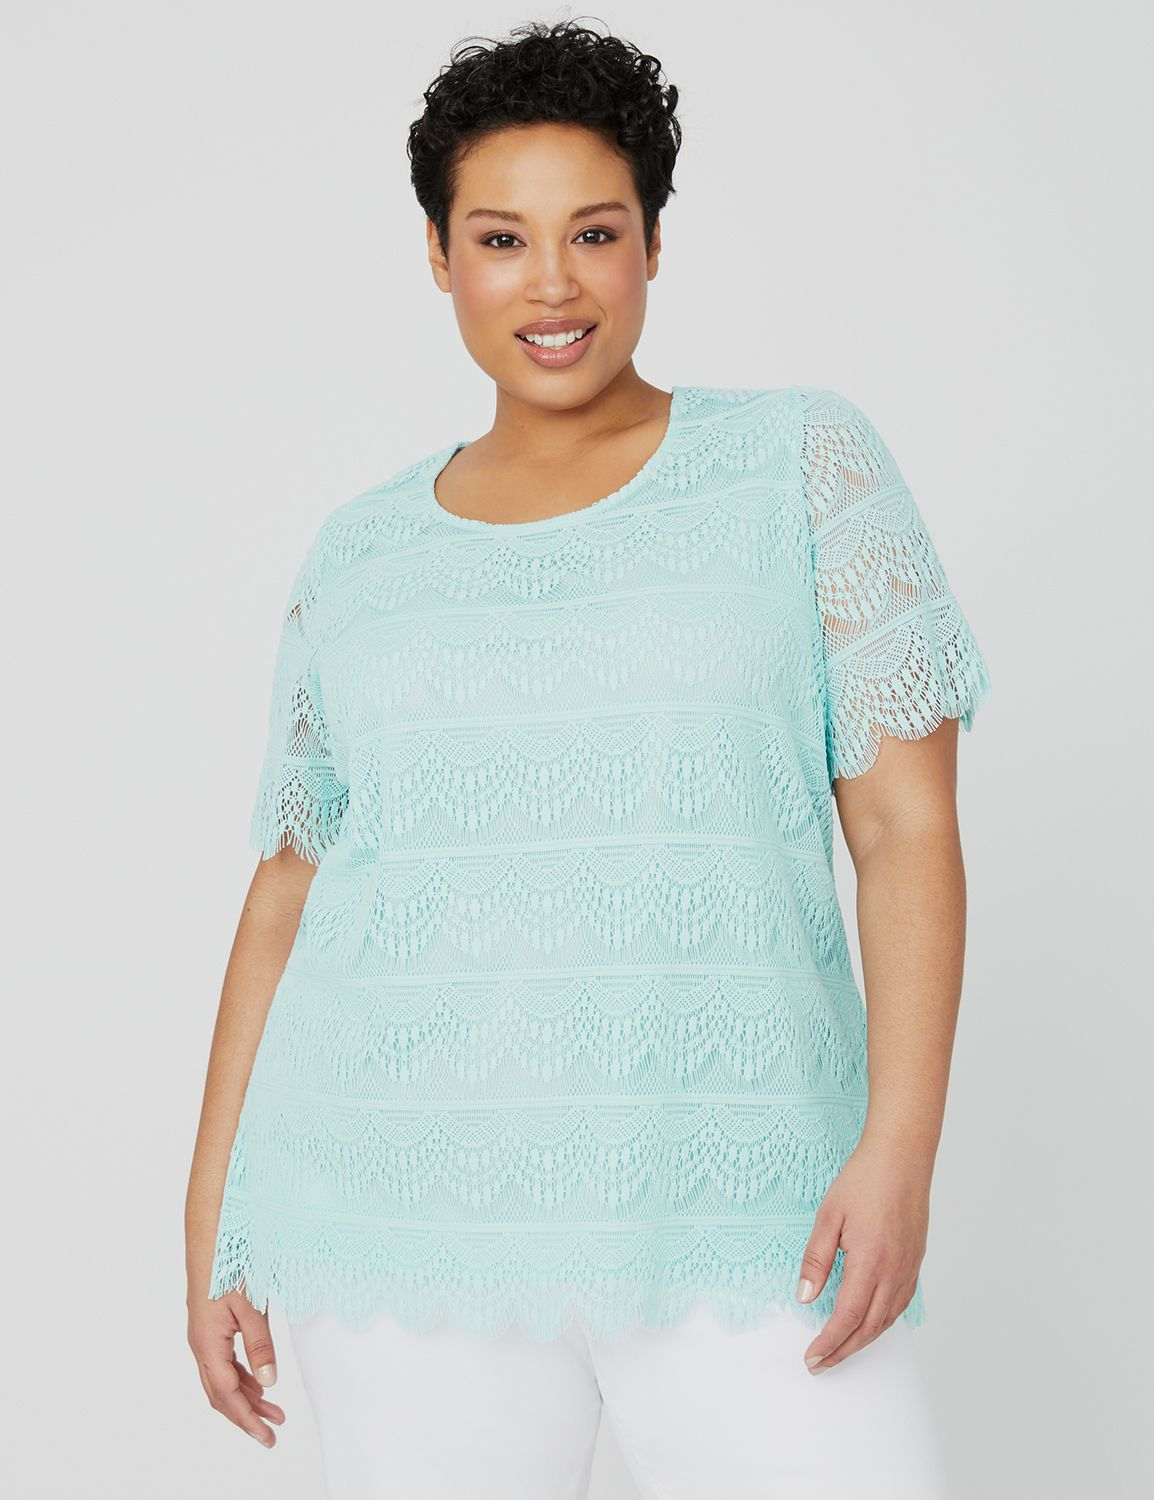 Waves of Lace Top 1087830 SCALLOP EDGE ALLOVER LACE MP-300100143